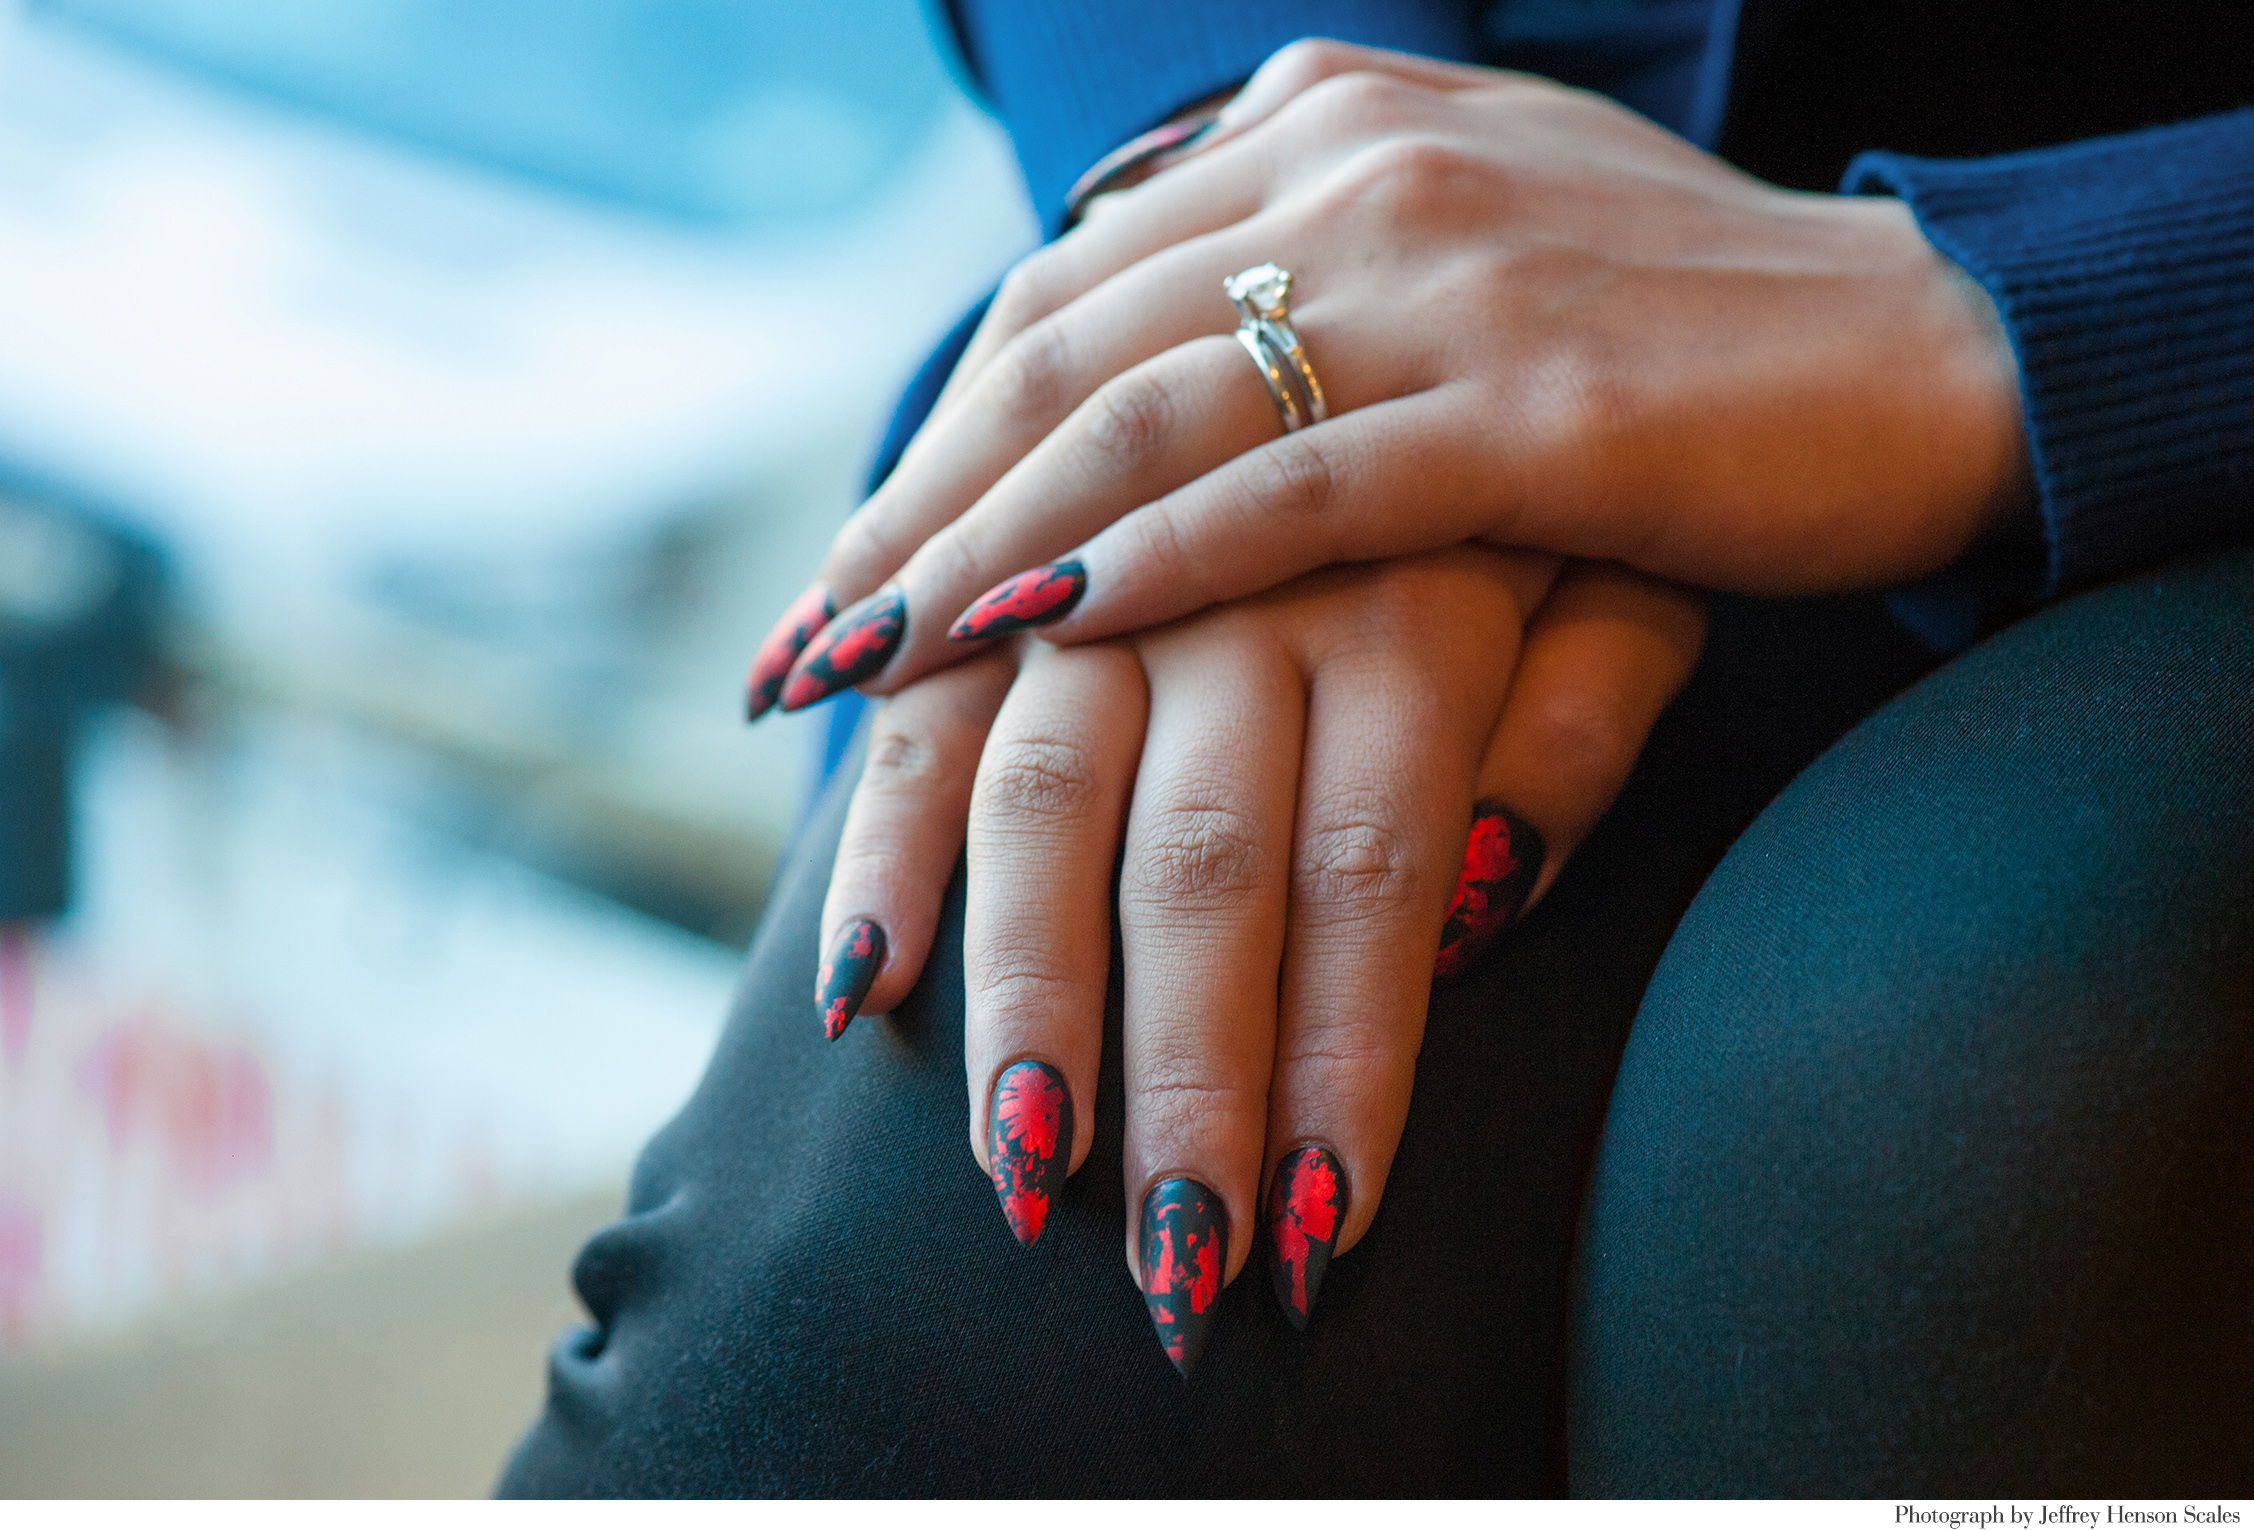 The_New_York_Times_TheNewYorkTimes_THELOOK_The_look_ Style_TakingNewYorkbytheHand_Manicures_Nail_Art__AkikoSalon_Rebecca_Pietri_Writer_Stylist_Casting_JefferyHensonScales_Photographer_EveLyons_Editor.JPG